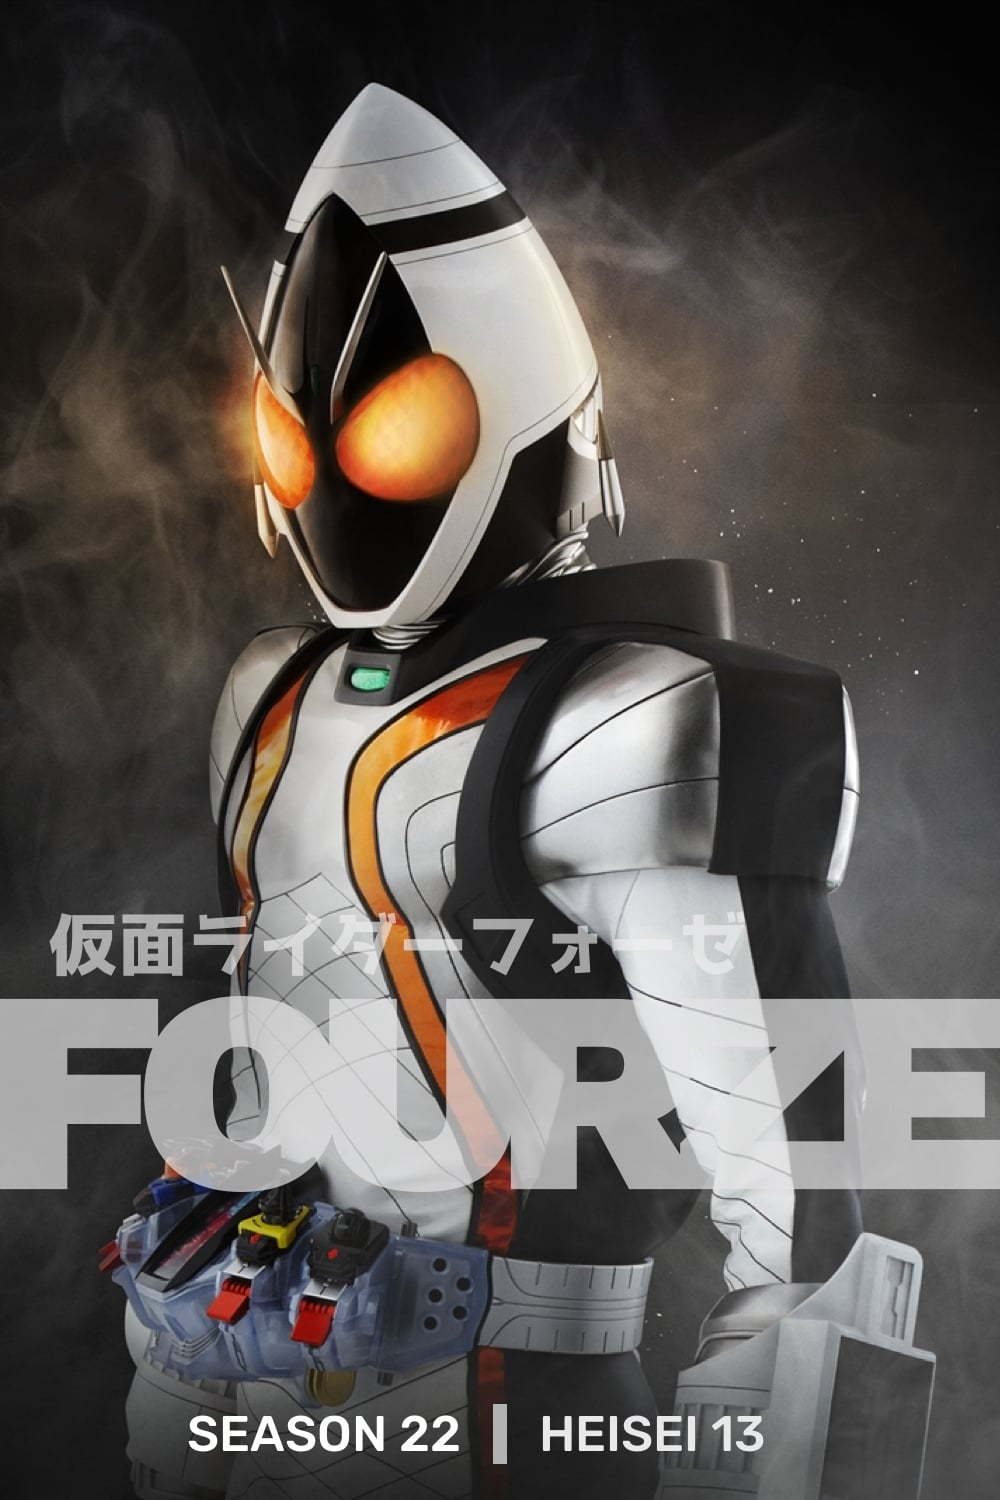 Kamen Rider - Season 21 Episode 35 : Dreams, Brother, Birth's Secret Season 22